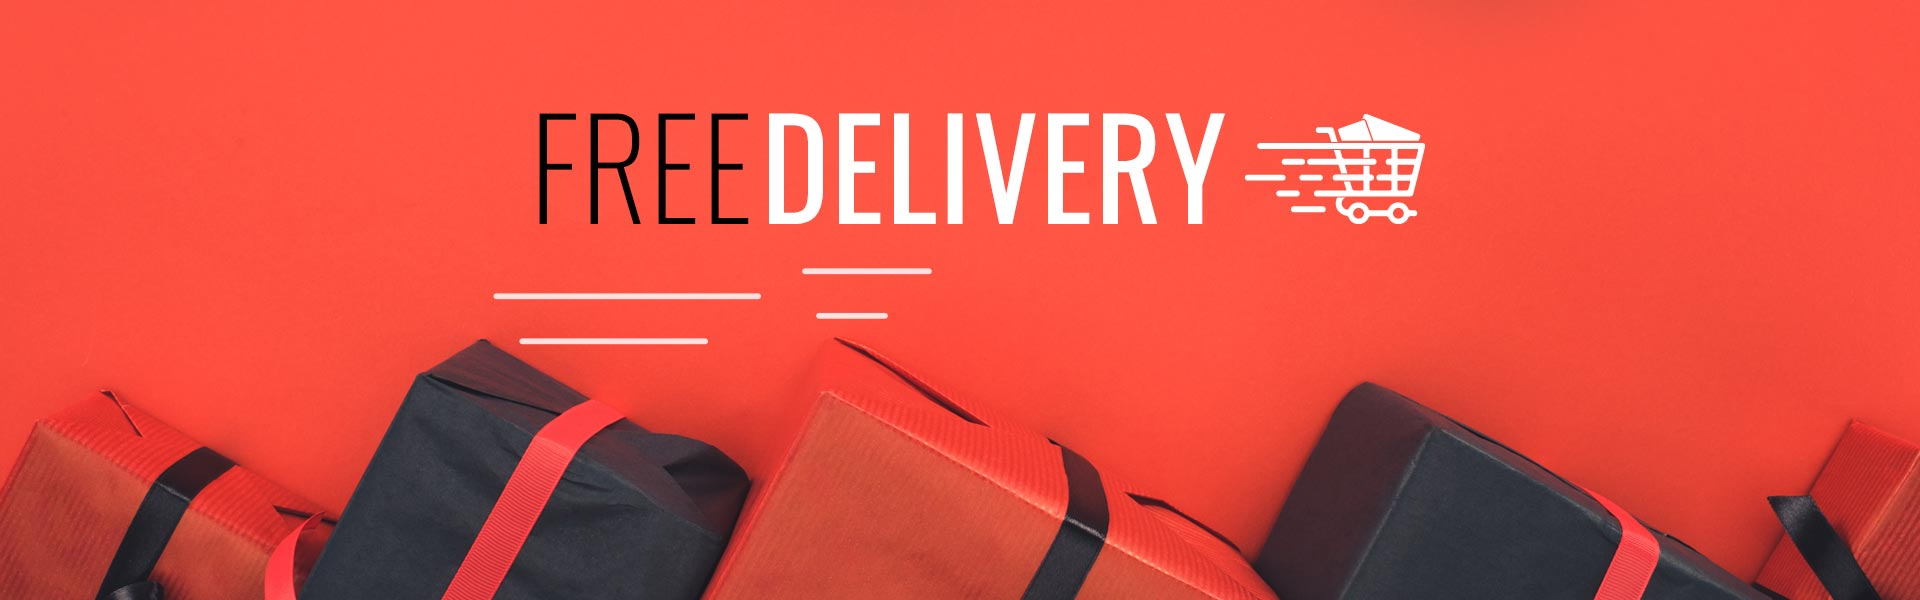 19-03-04-free-delivery---slider-us-4_3753f6604e95590391a9d39248956637